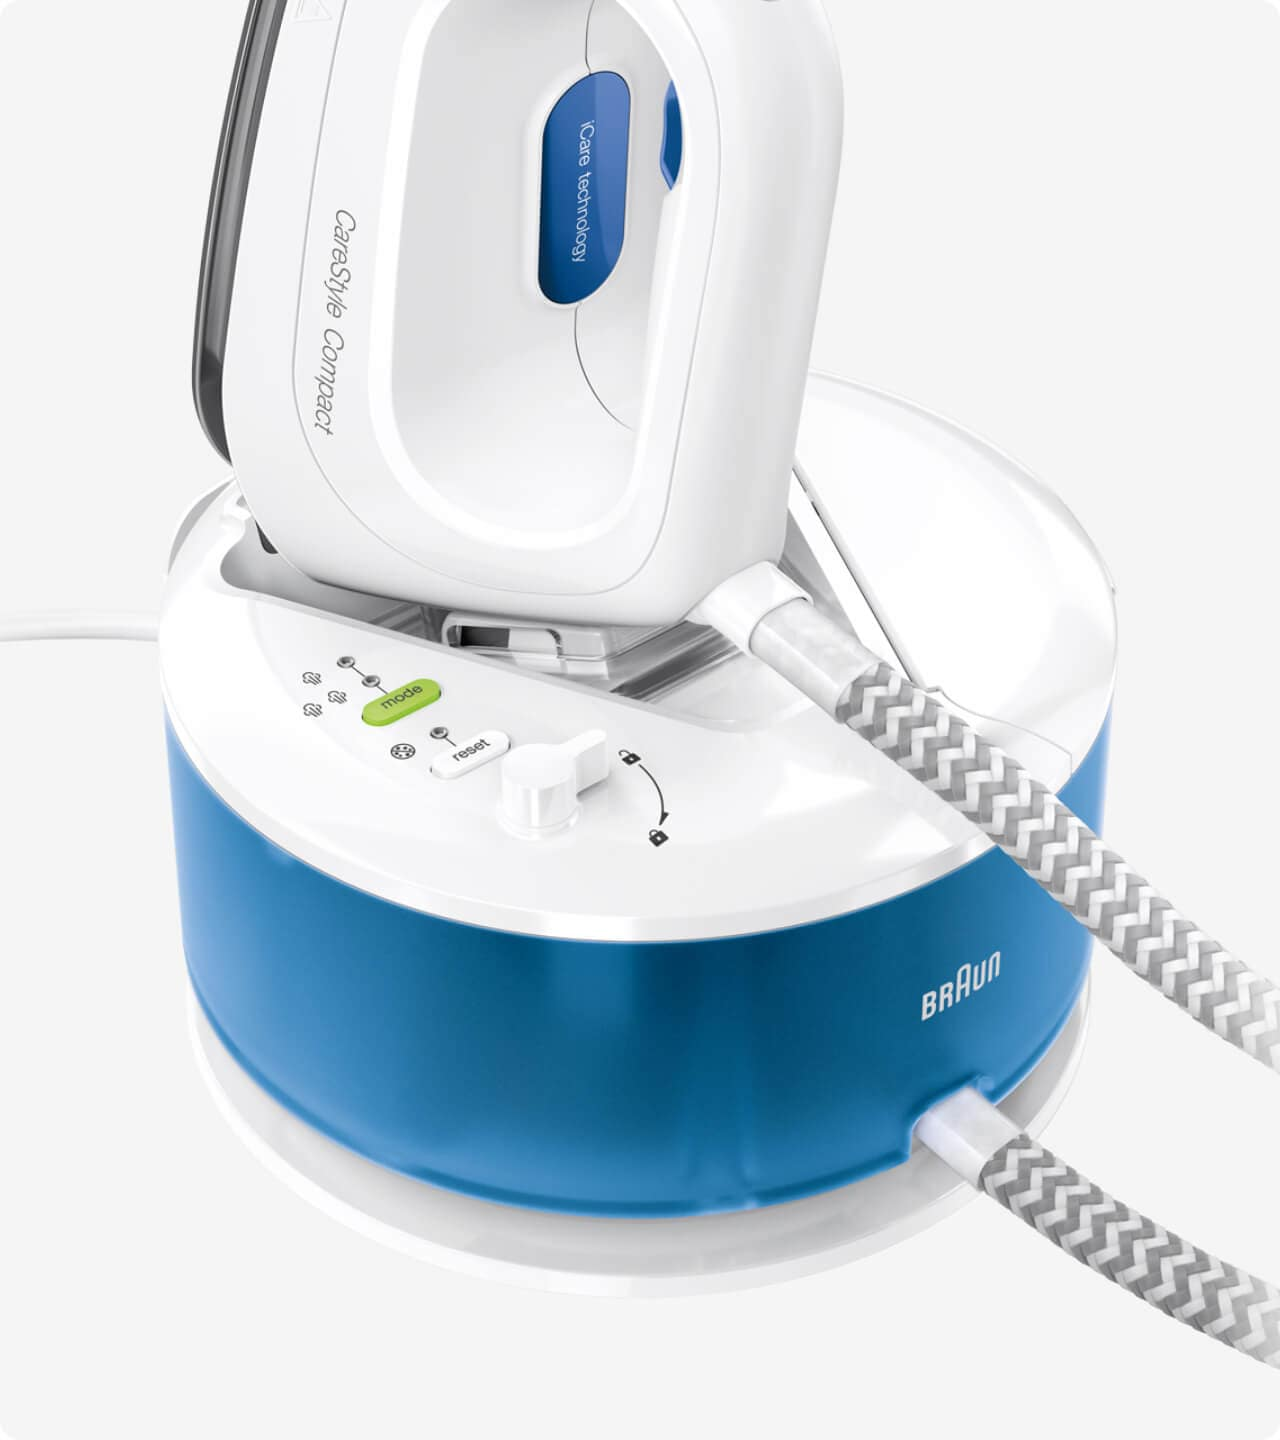 Braun CareStyle Compact: lightweight and compact